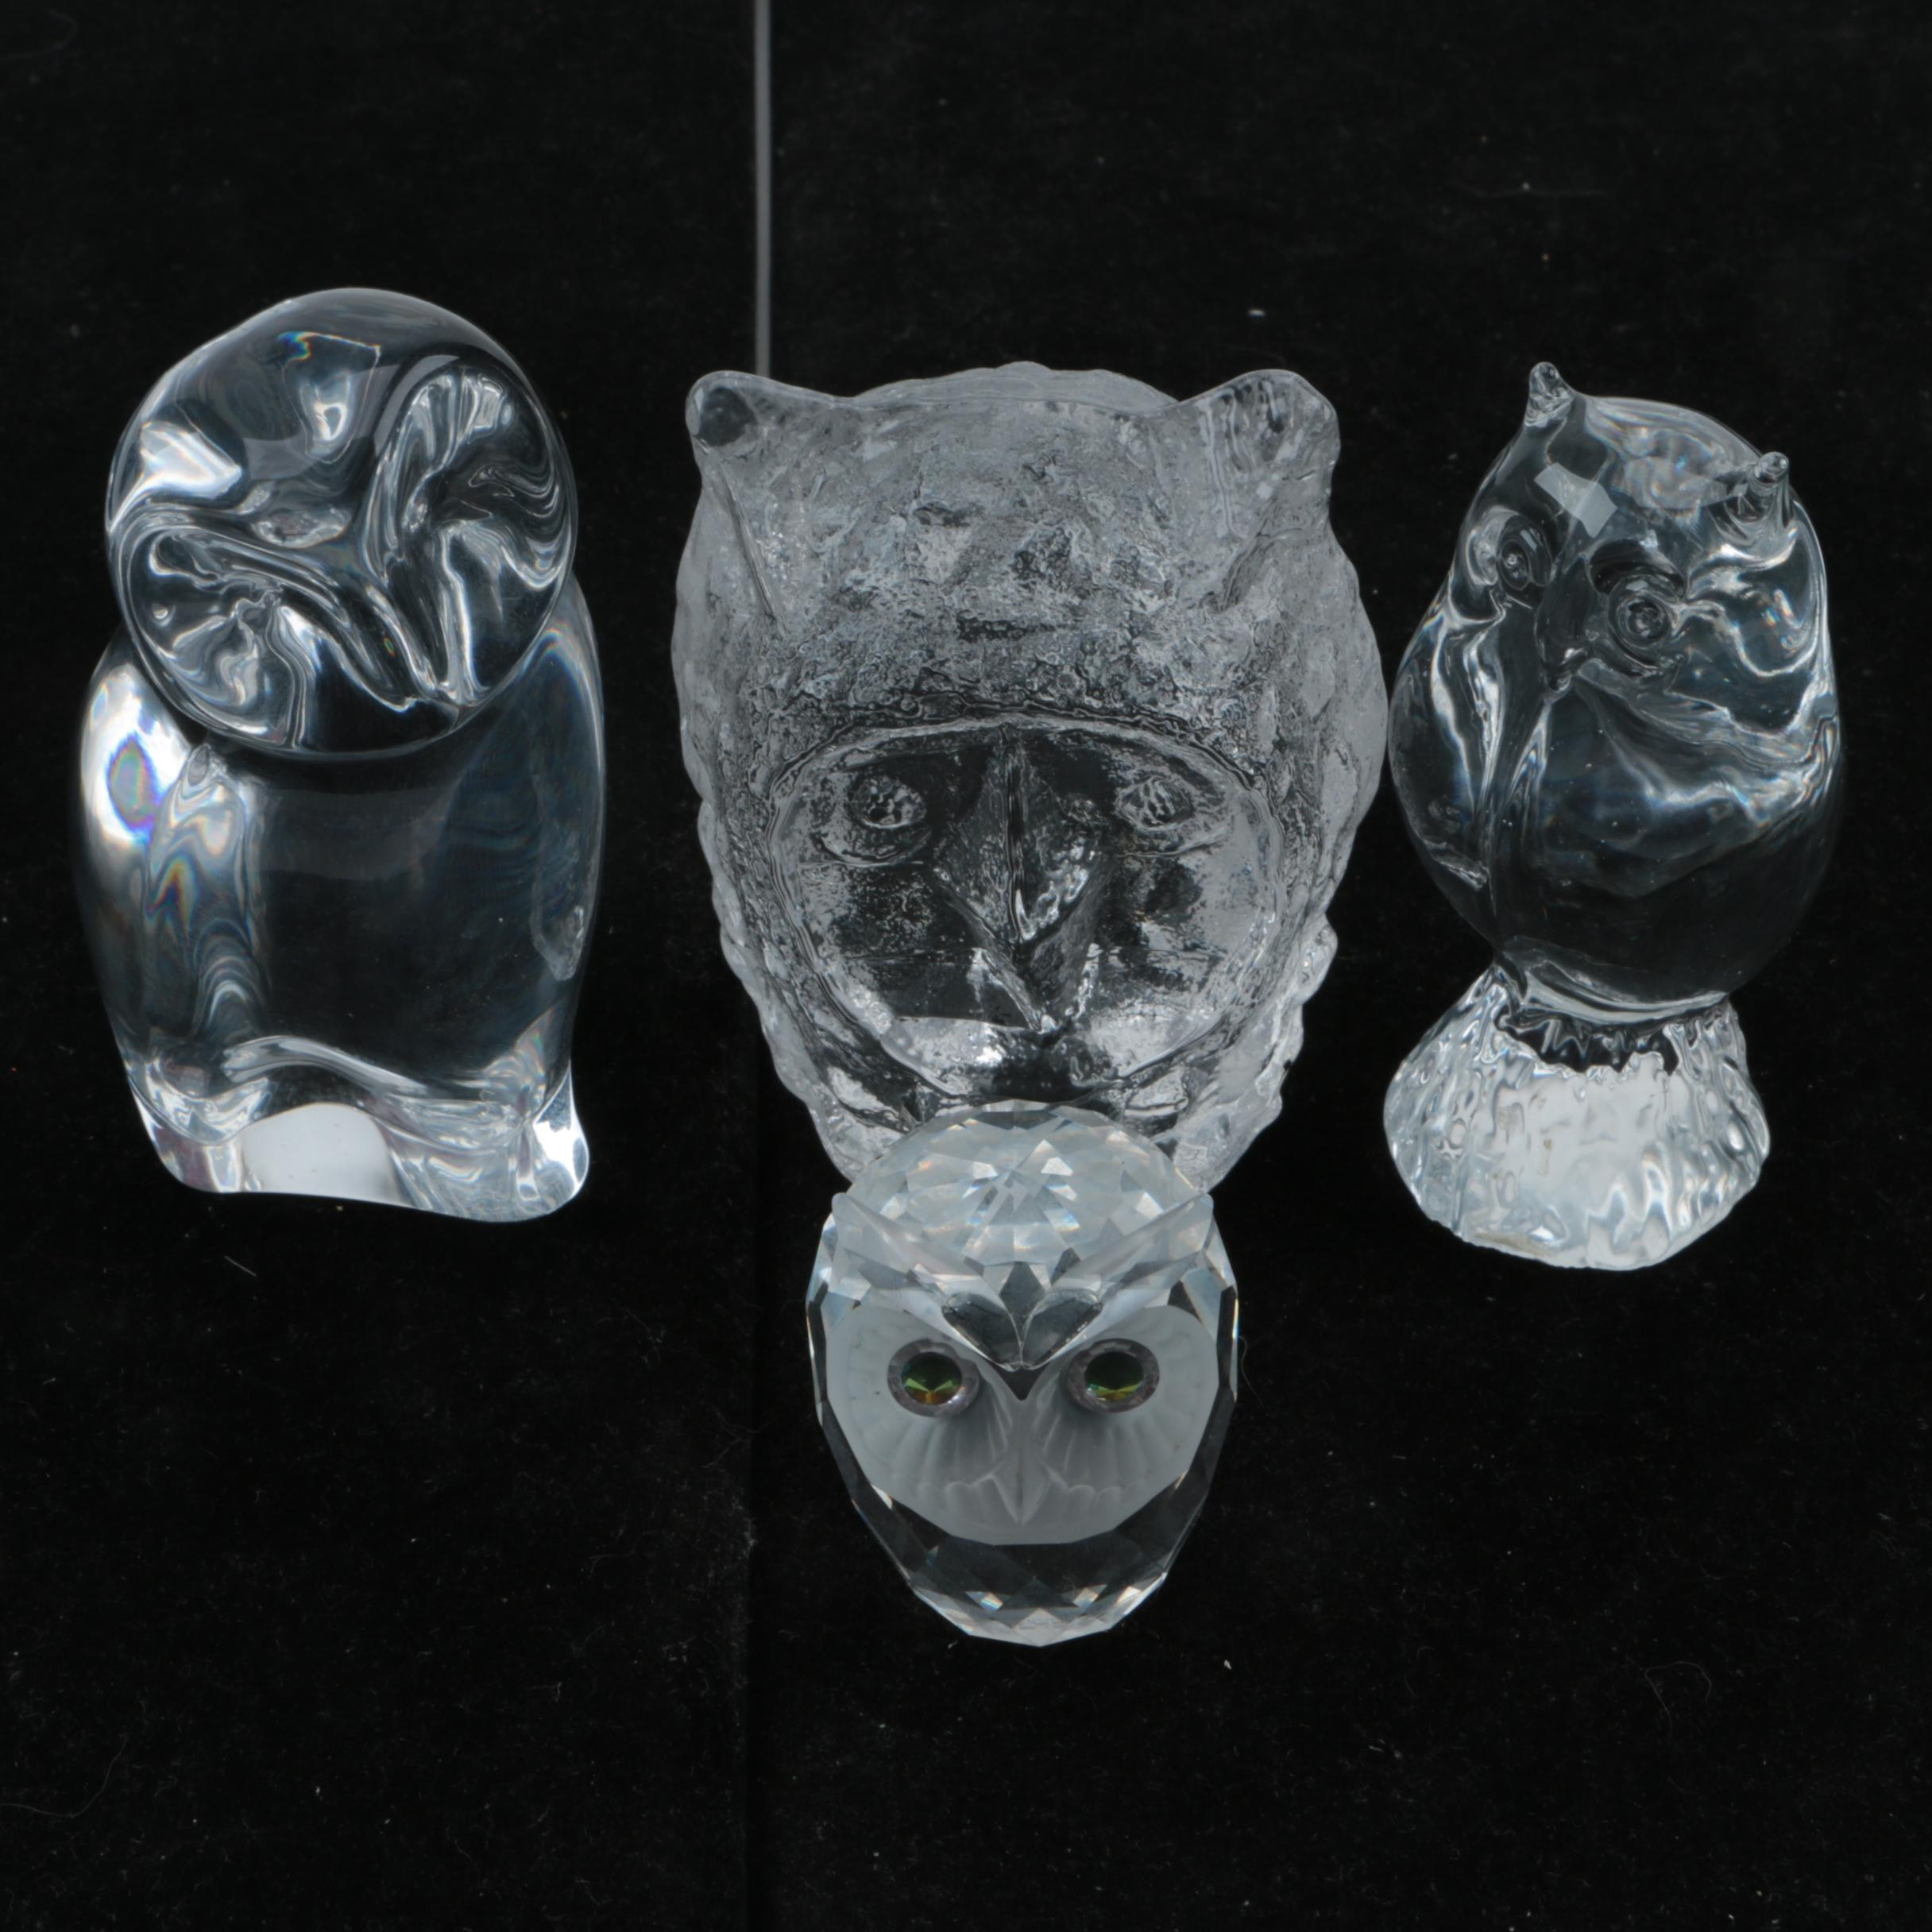 Crystal and Glass Owl Figurines including Swarovski, Pukeberg, and Baccarat